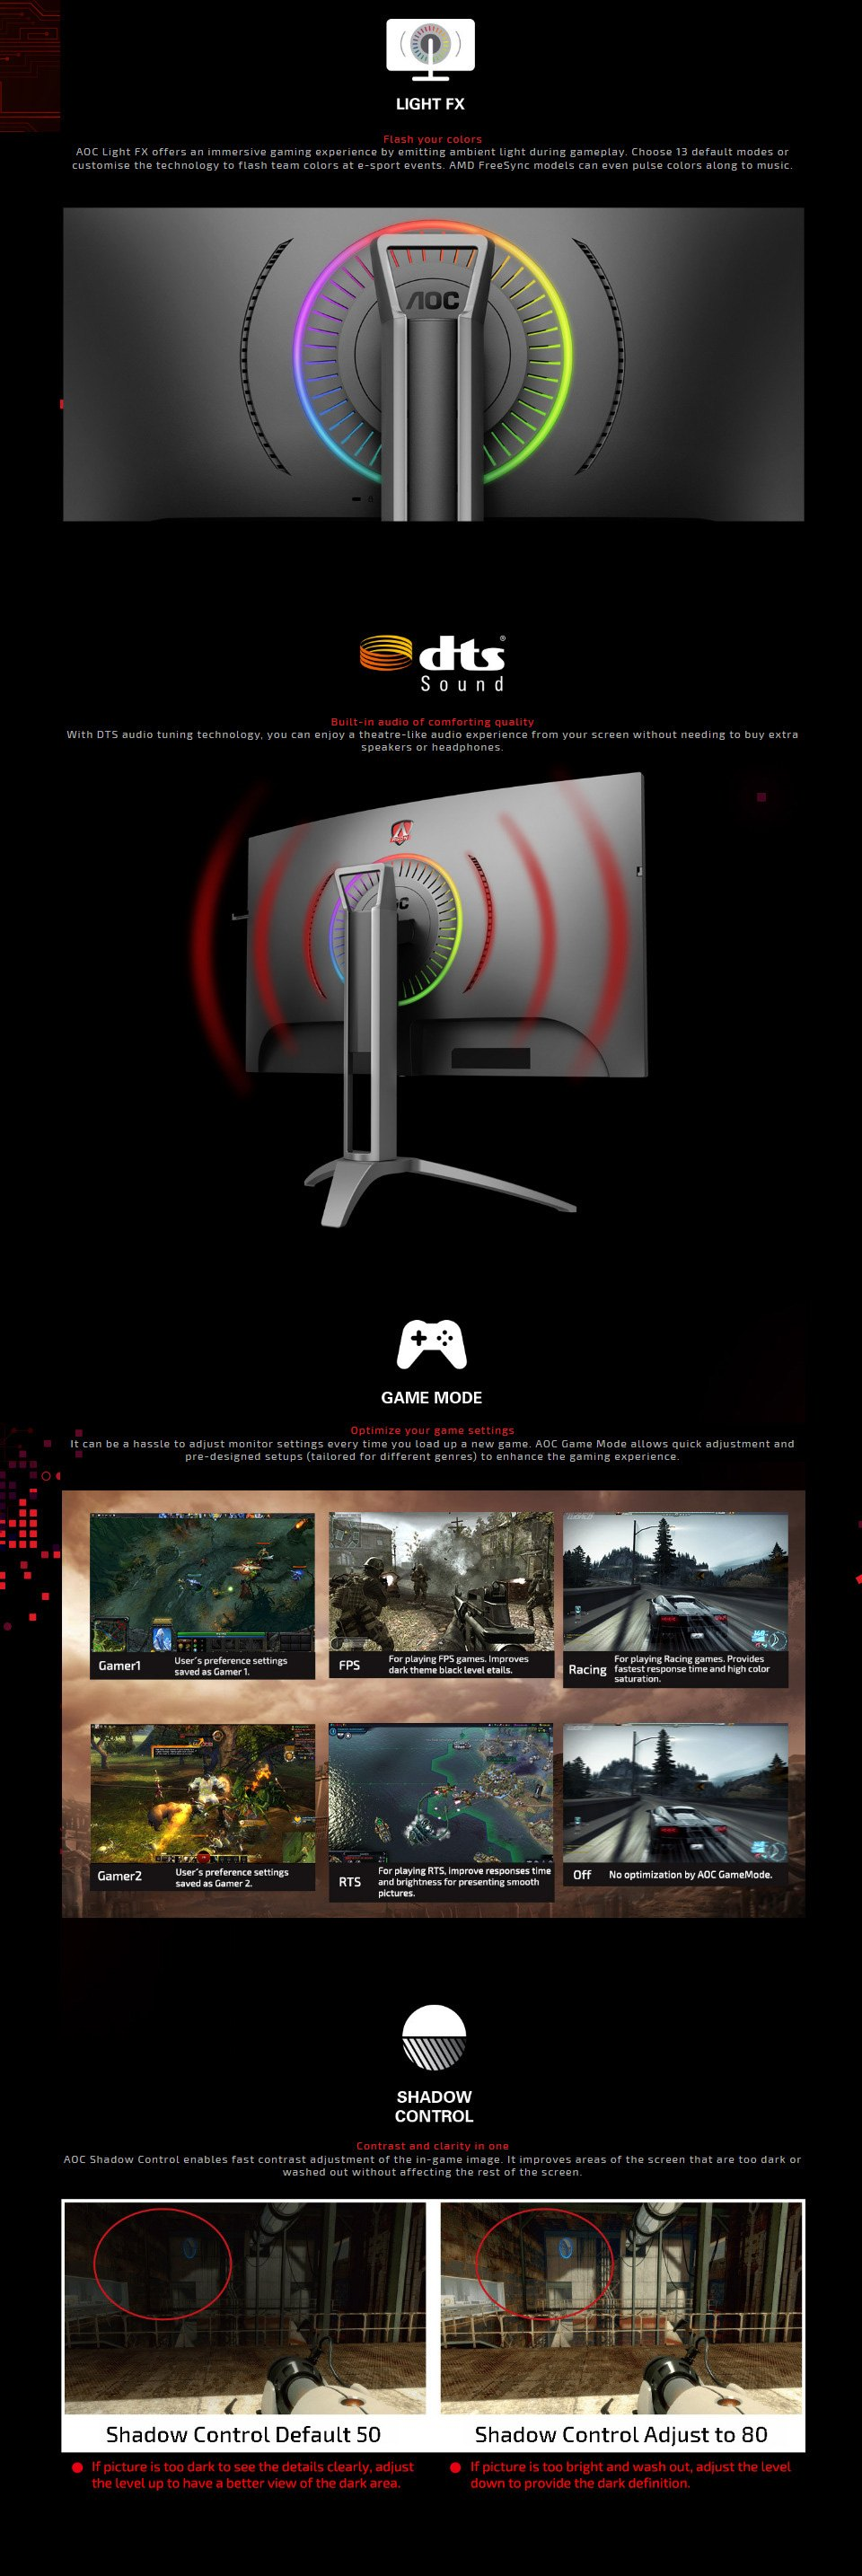 AOC AG323QCXE QHD 144Hz FreeSync HDR Curved 31.5in Monitor features 2